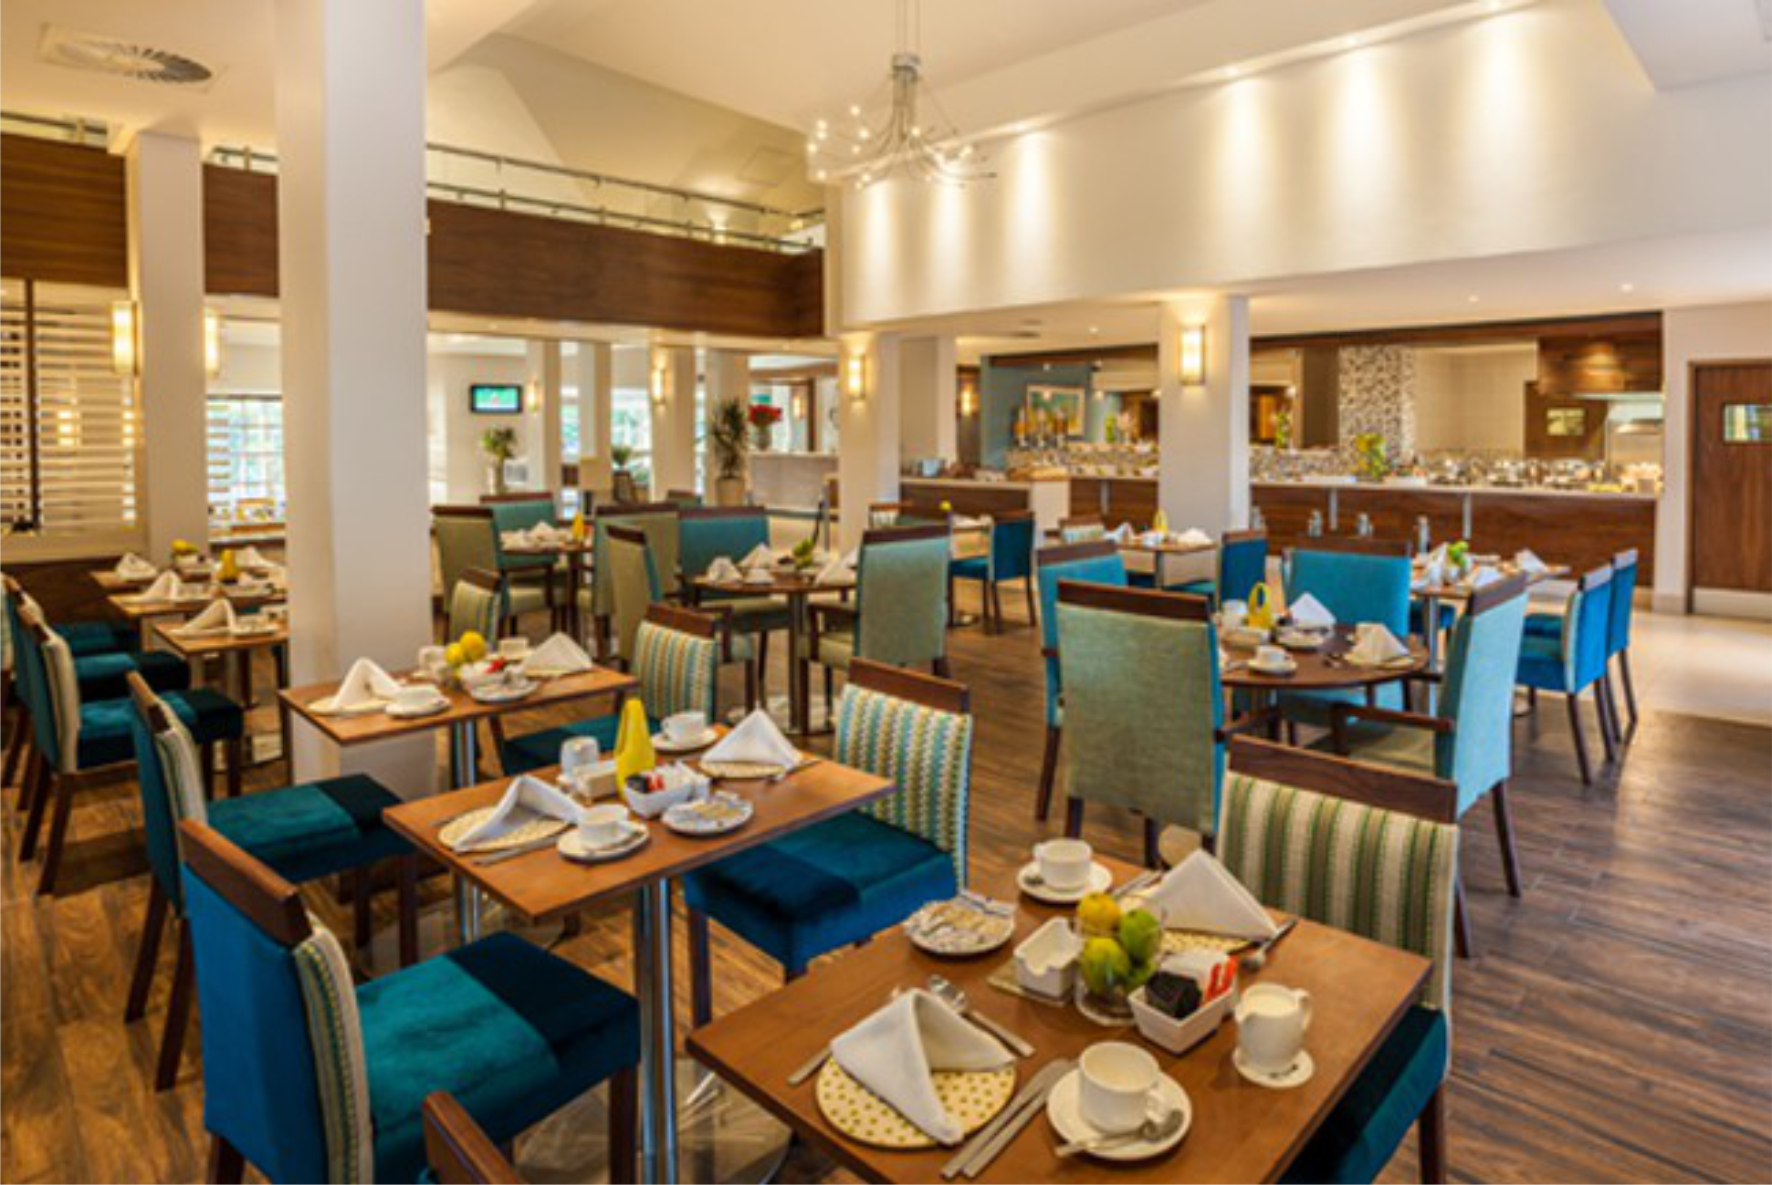 Town Lodge dining